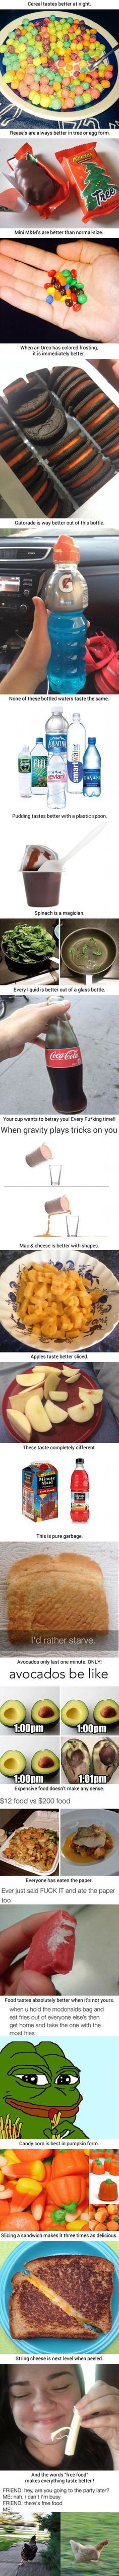 These 23 Food Facts That Are Totally And Undeniably True